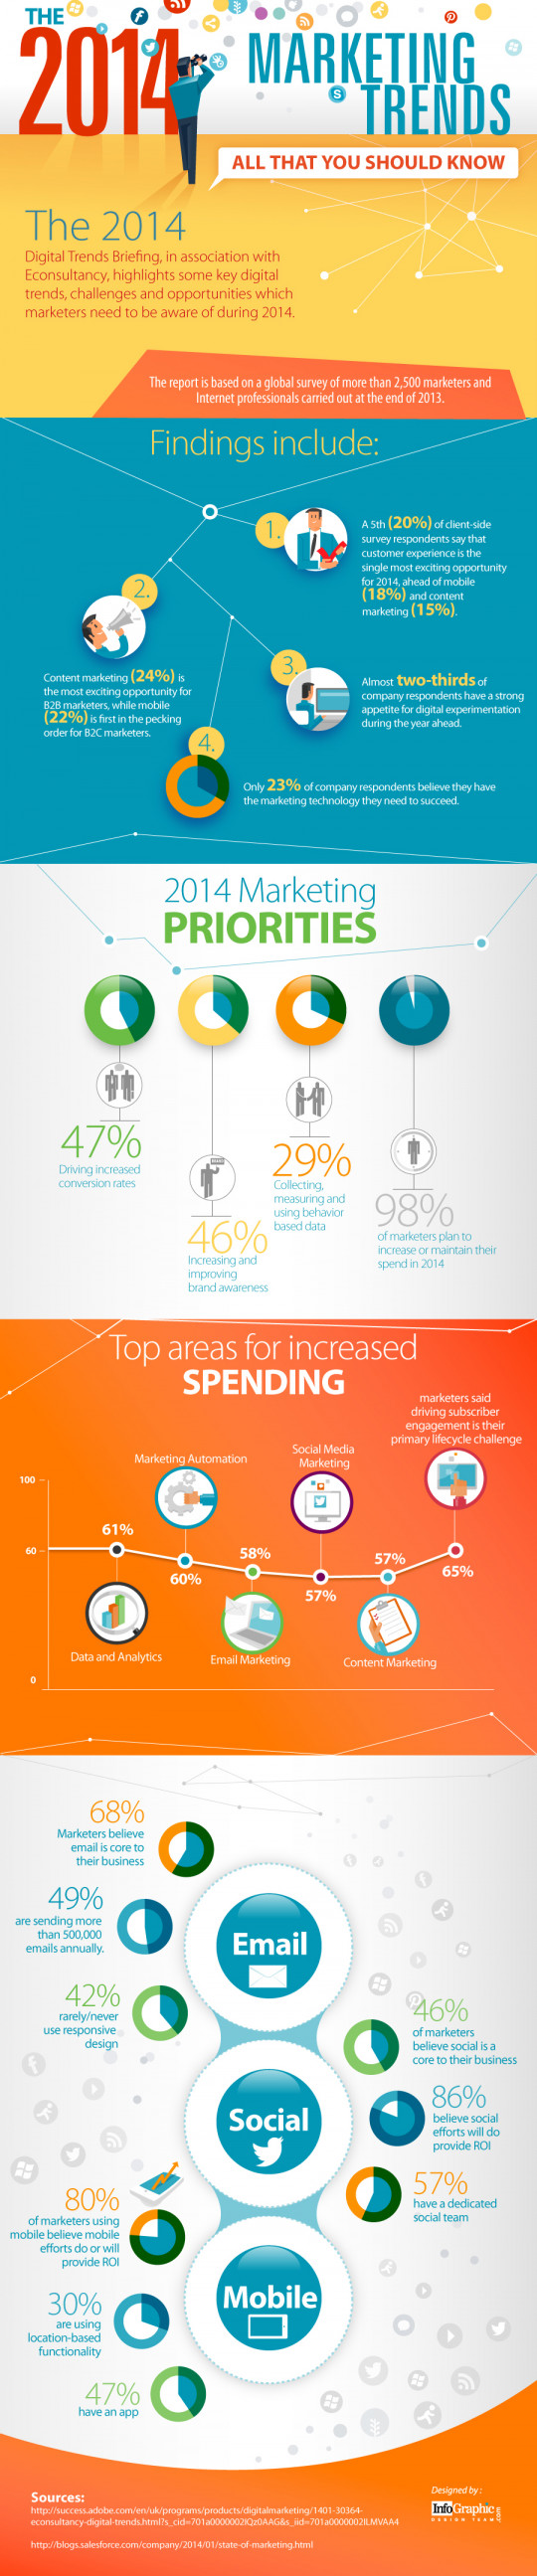 The 2014 Marketing Trends - All That you Should Know